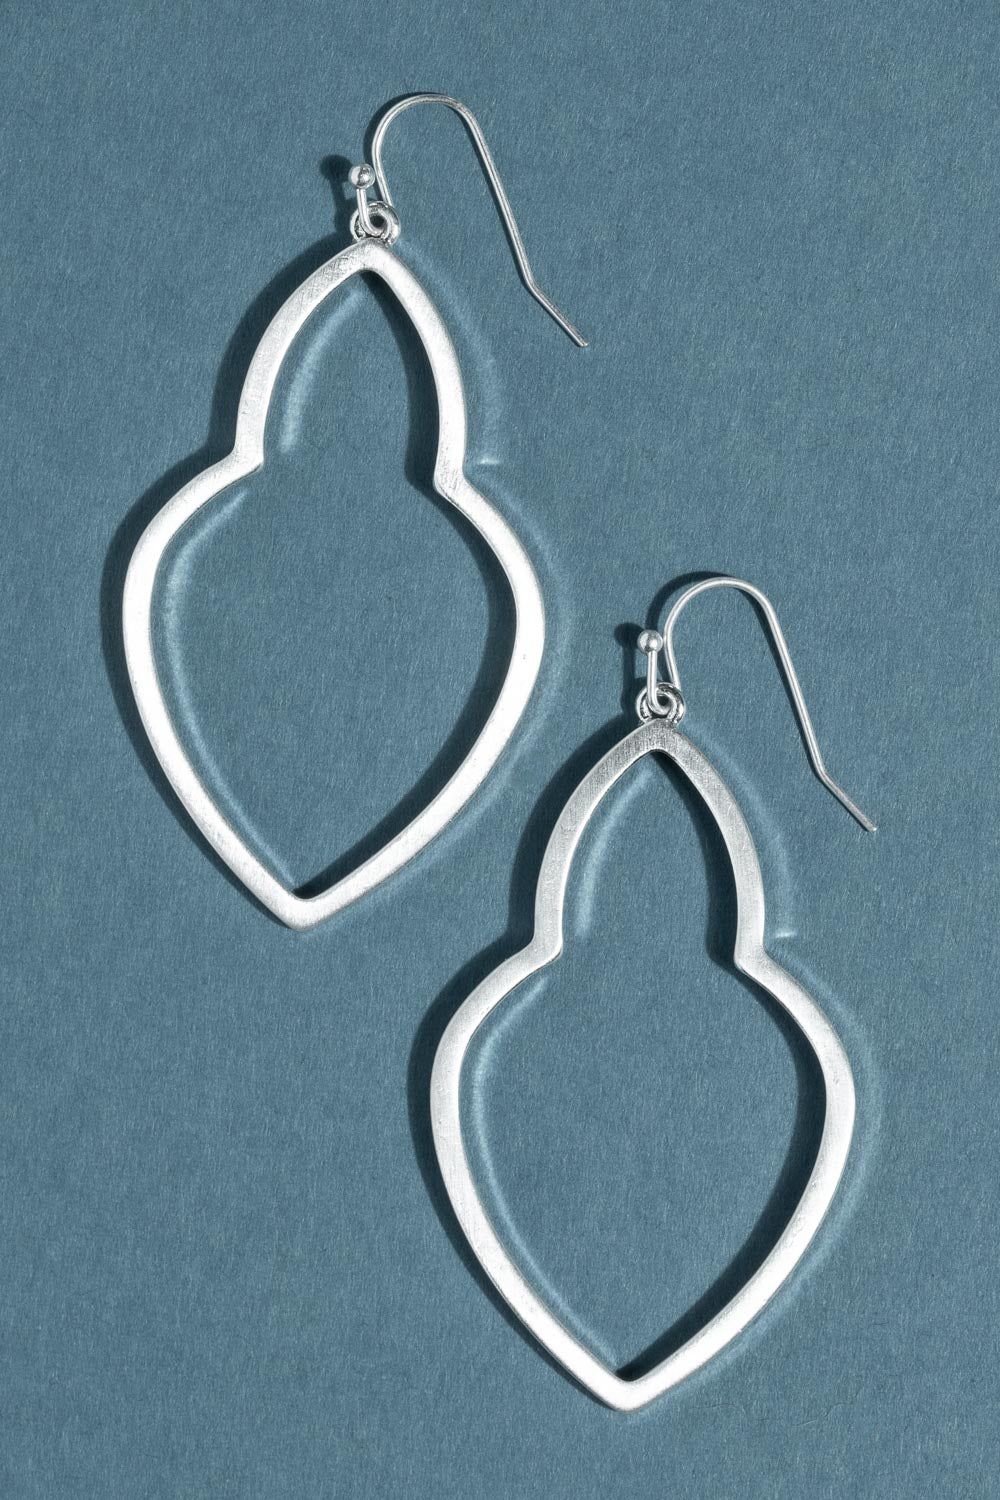 Type 2 Buyers Bazaar Earrings